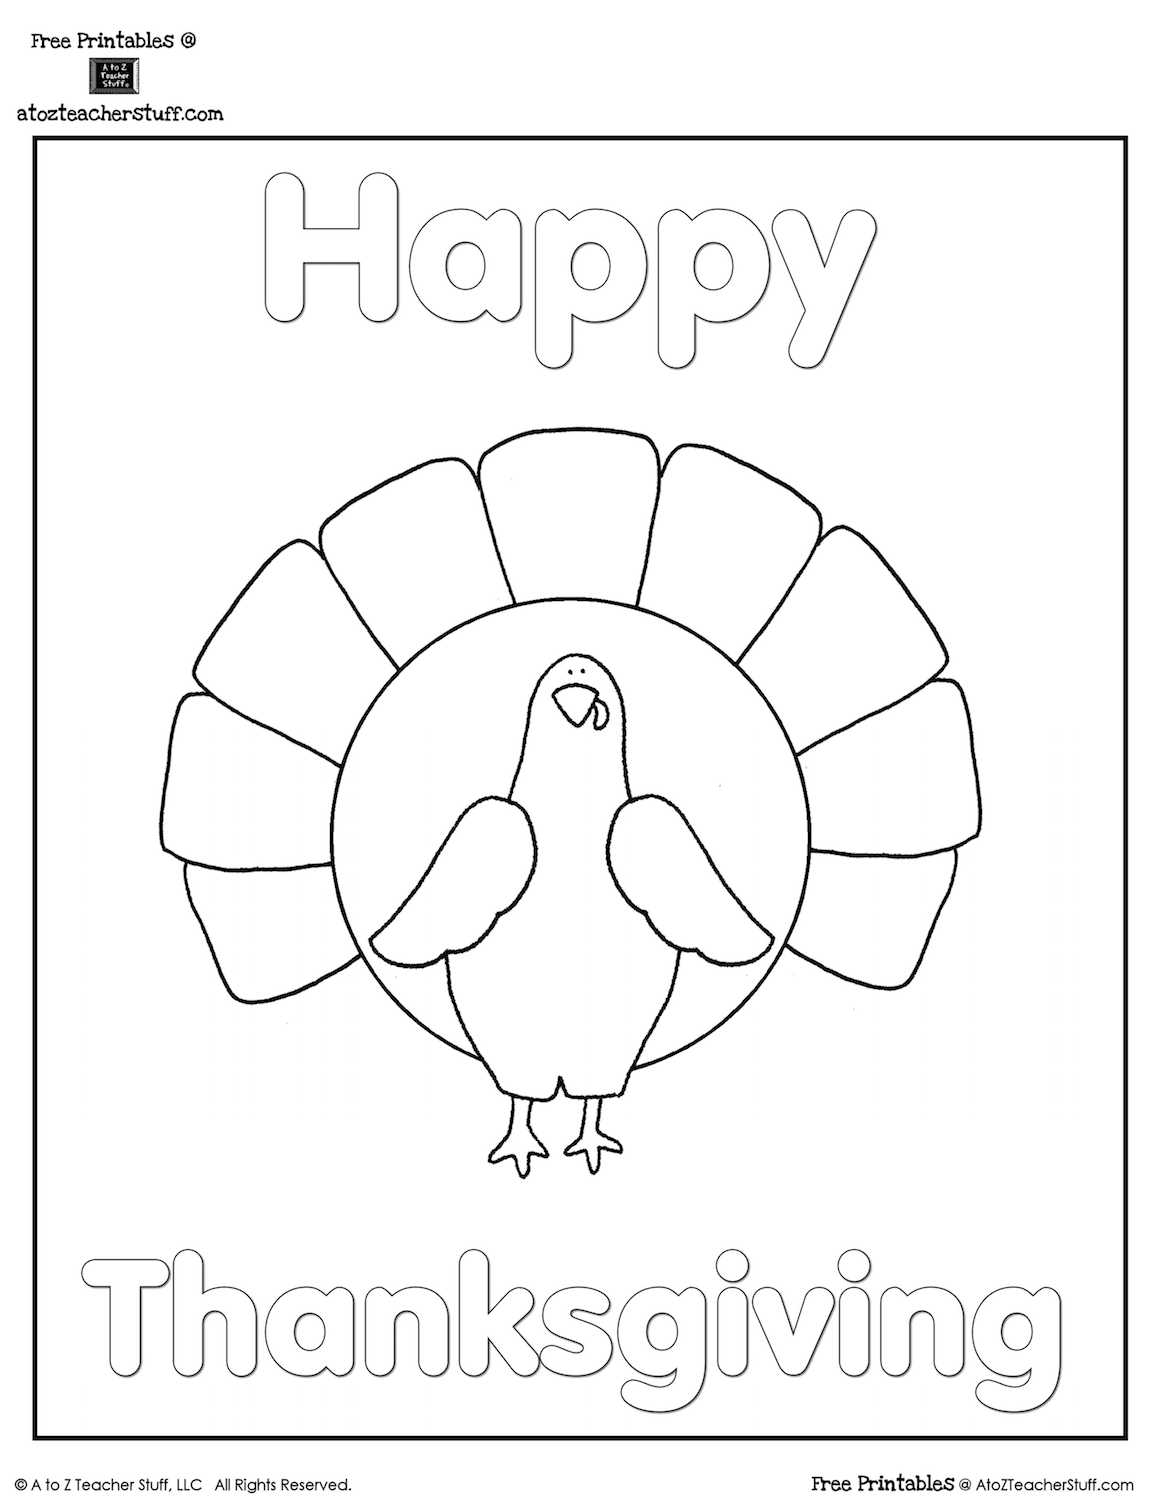 165+ FREE Thanksgiving Coloring Pages and printable activity sheets ...